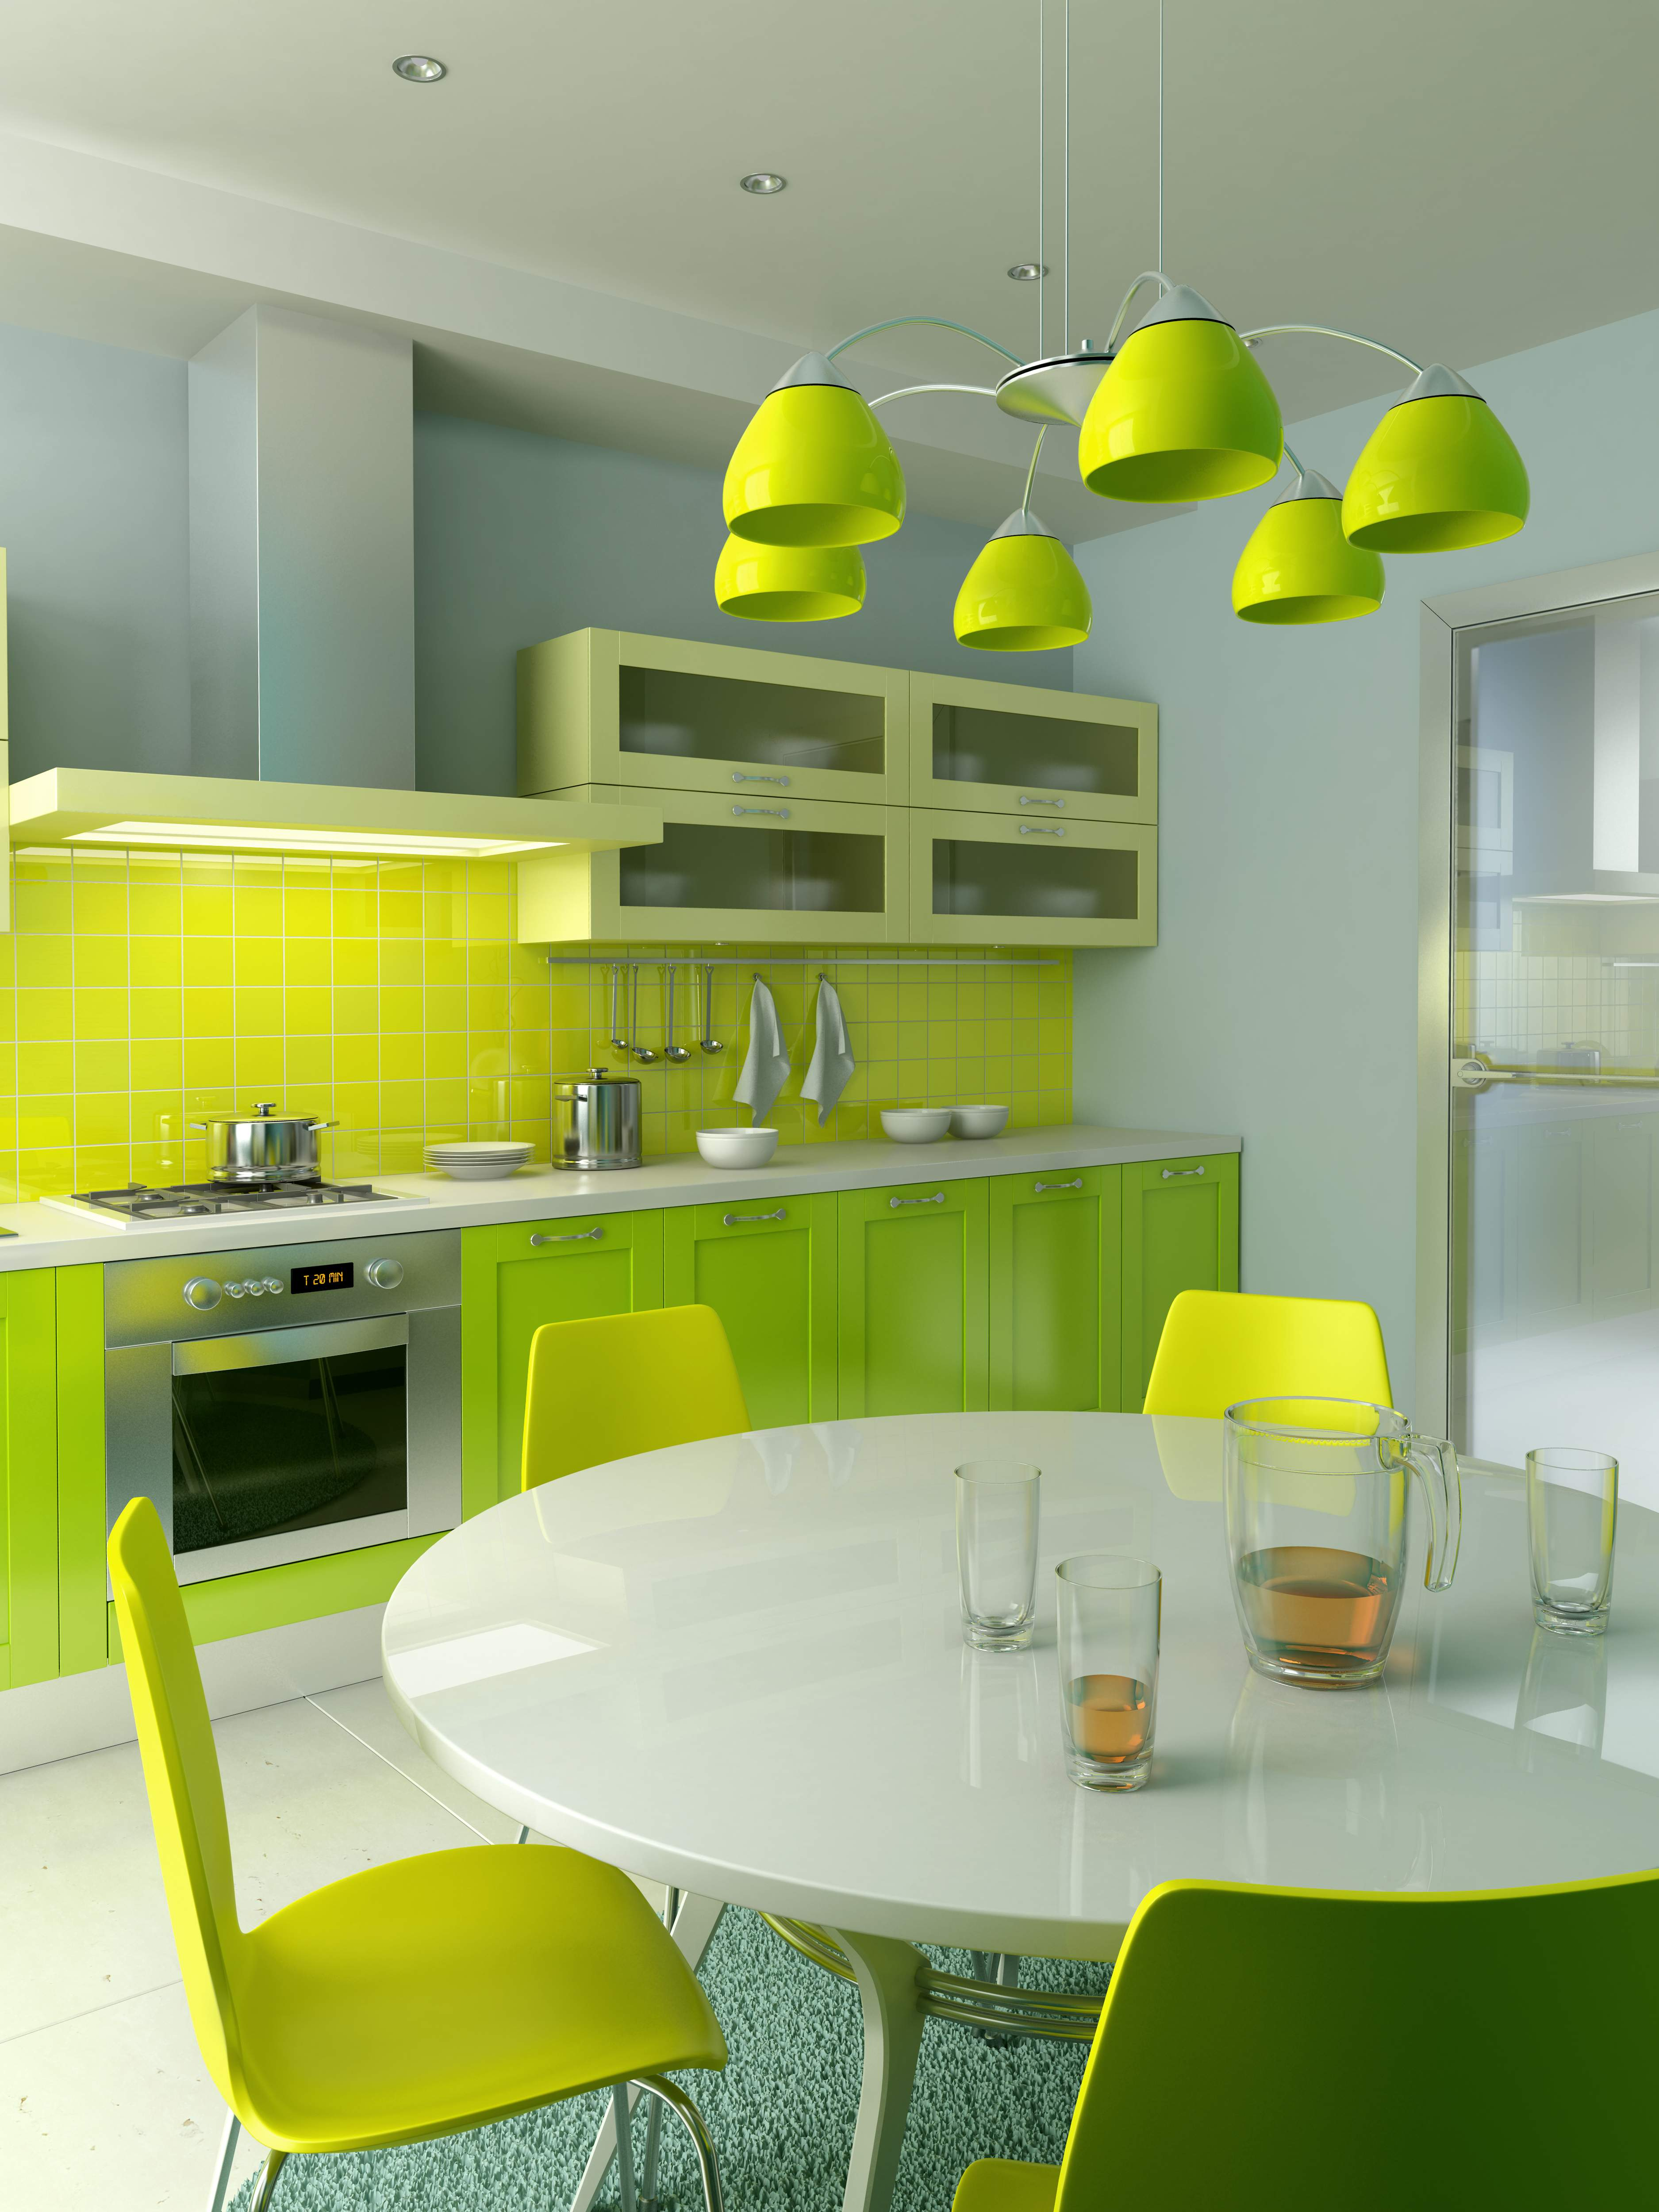 Black kitchen tables and chairs photo - 2